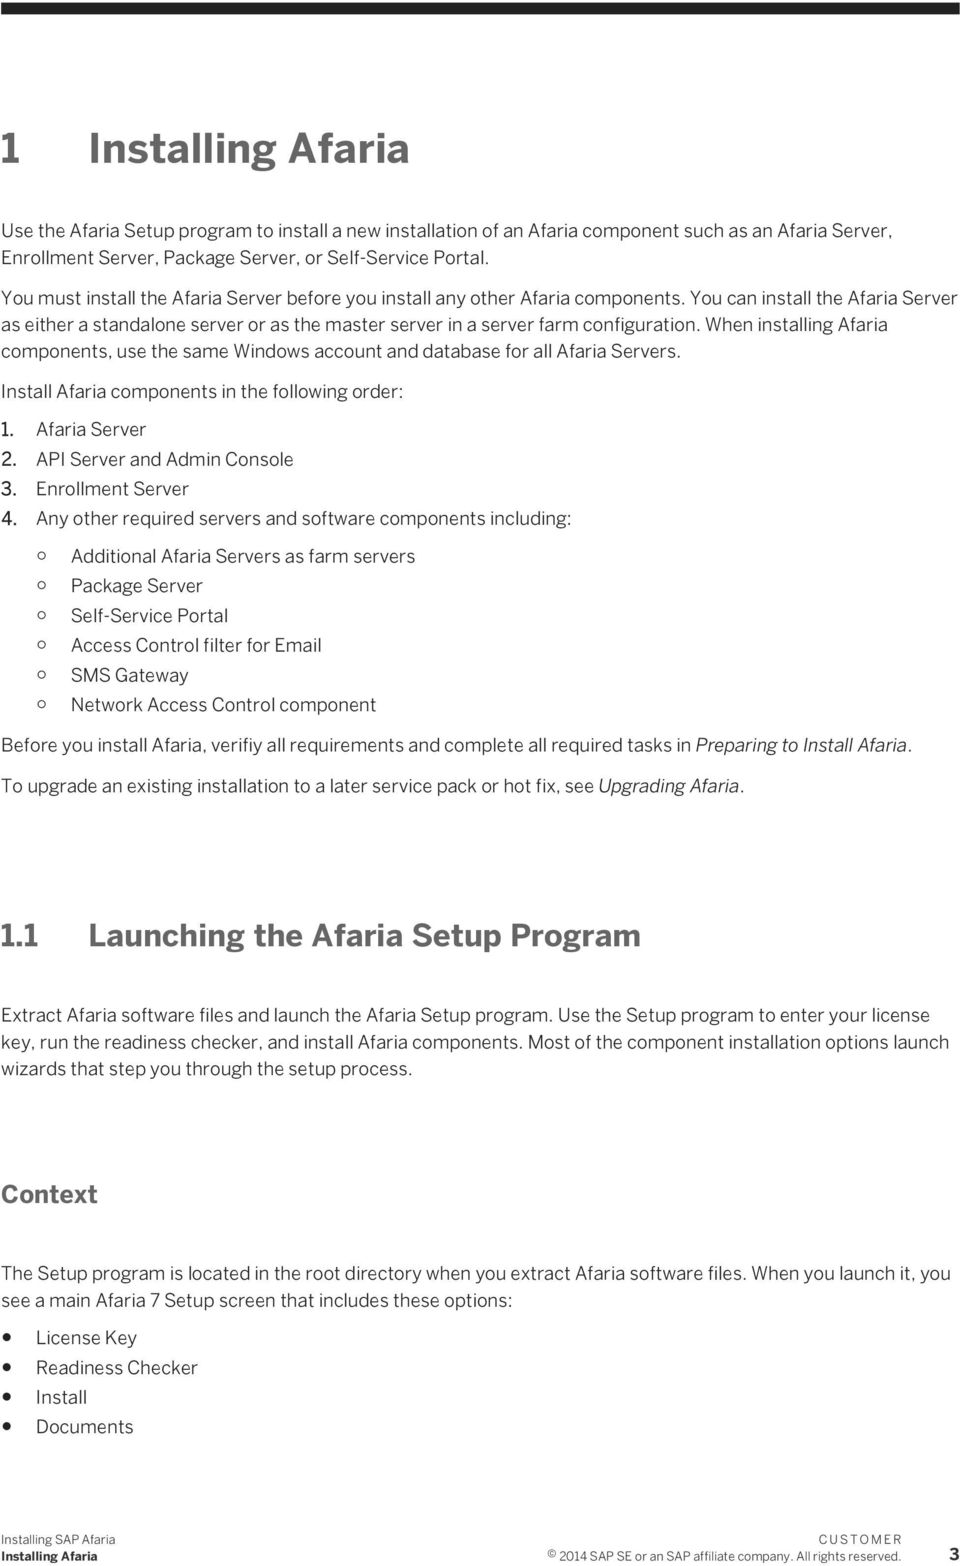 You can install the Afaria Server as either a standalone server or as the master server in a server farm configuration.